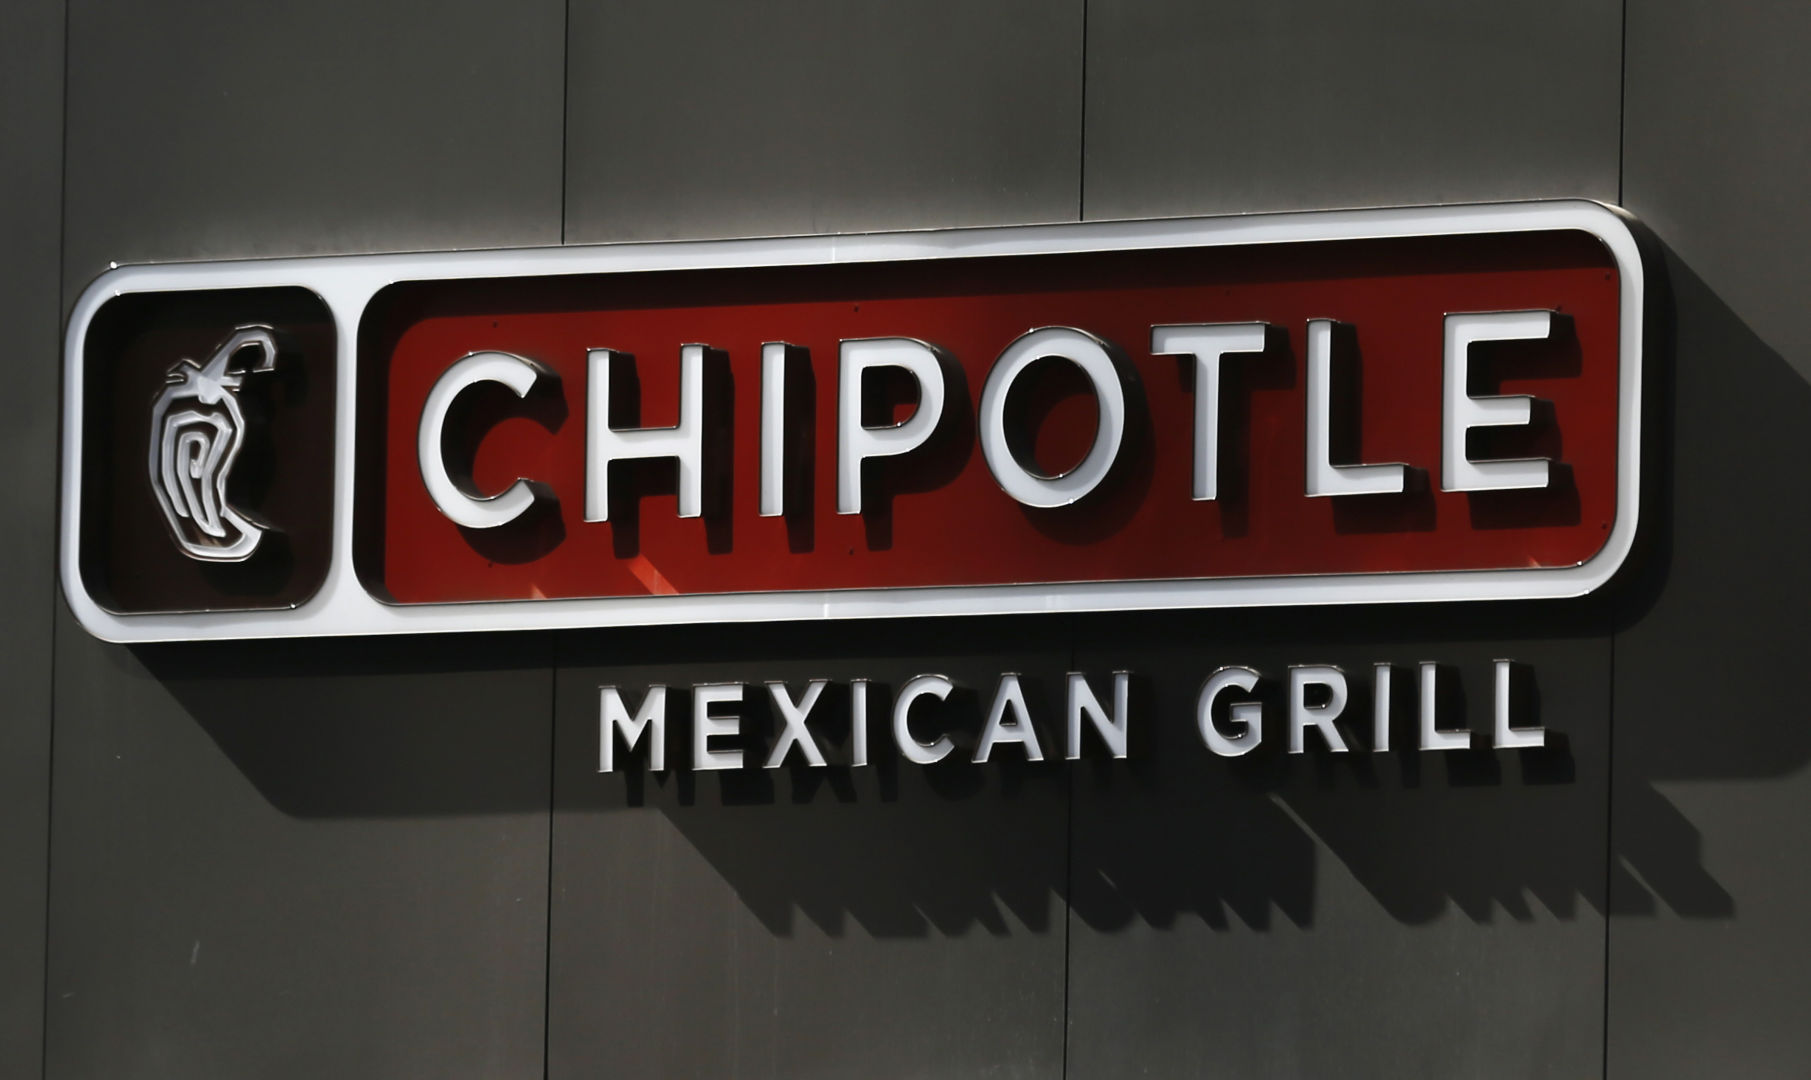 Chipotle is adding a second steak option to its menu, and we gave it a taste test